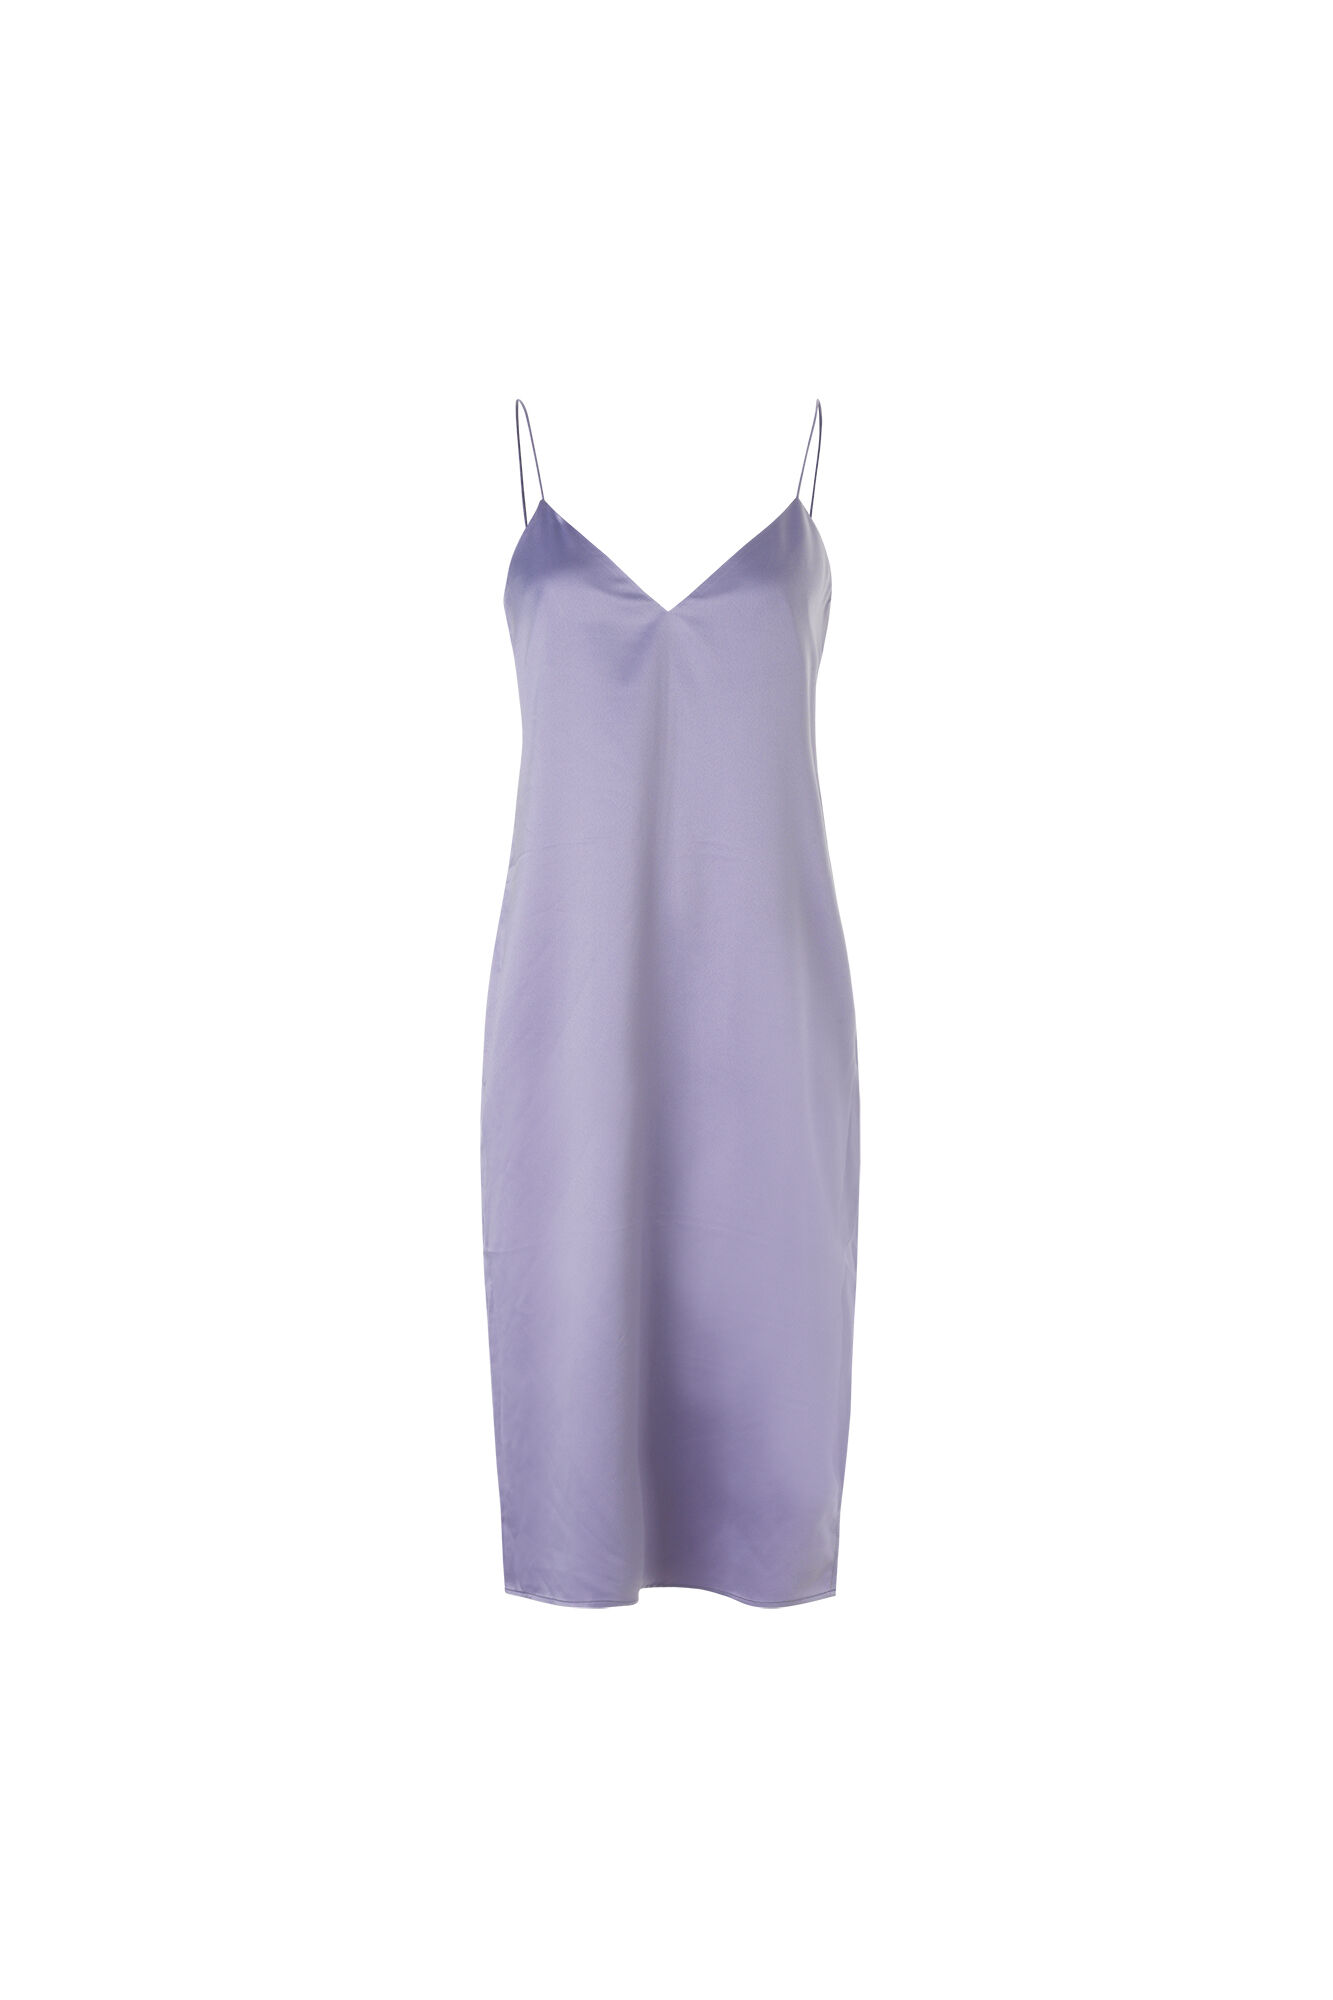 ENHULA SL DRESS 6495, LAVENDER GRAY